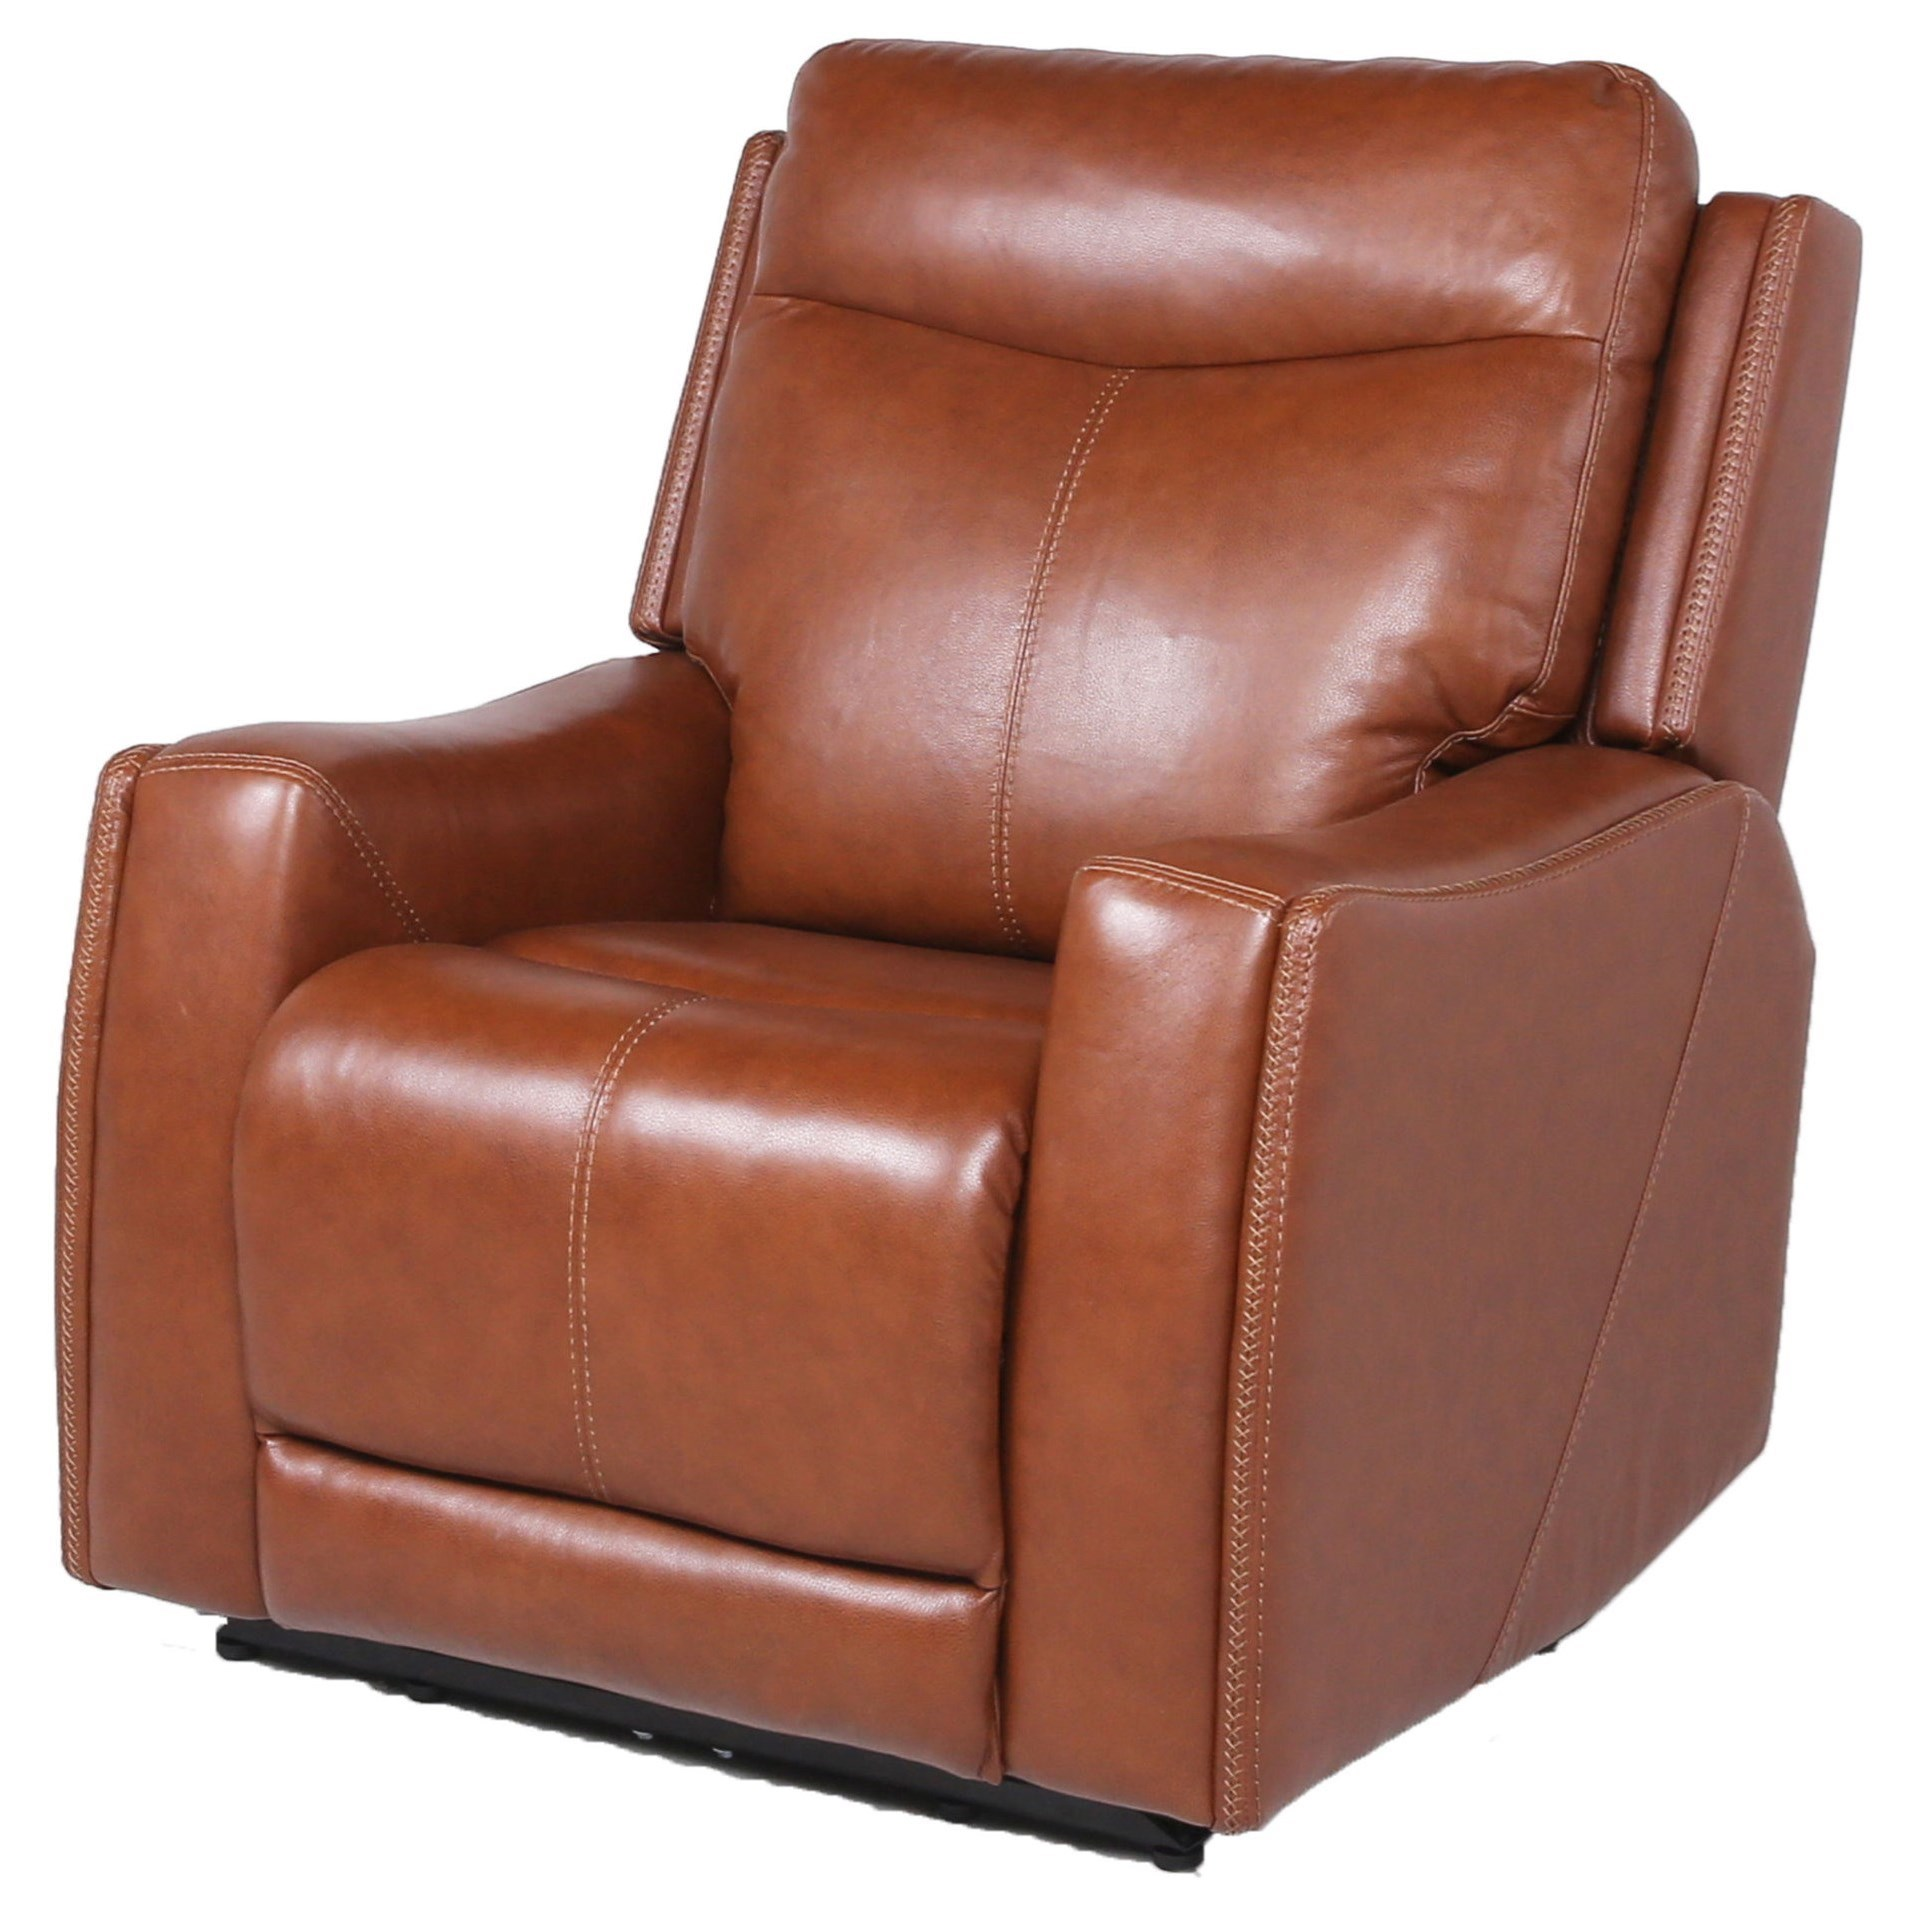 Natalia Power Recliner by Steve Silver at Northeast Factory Direct